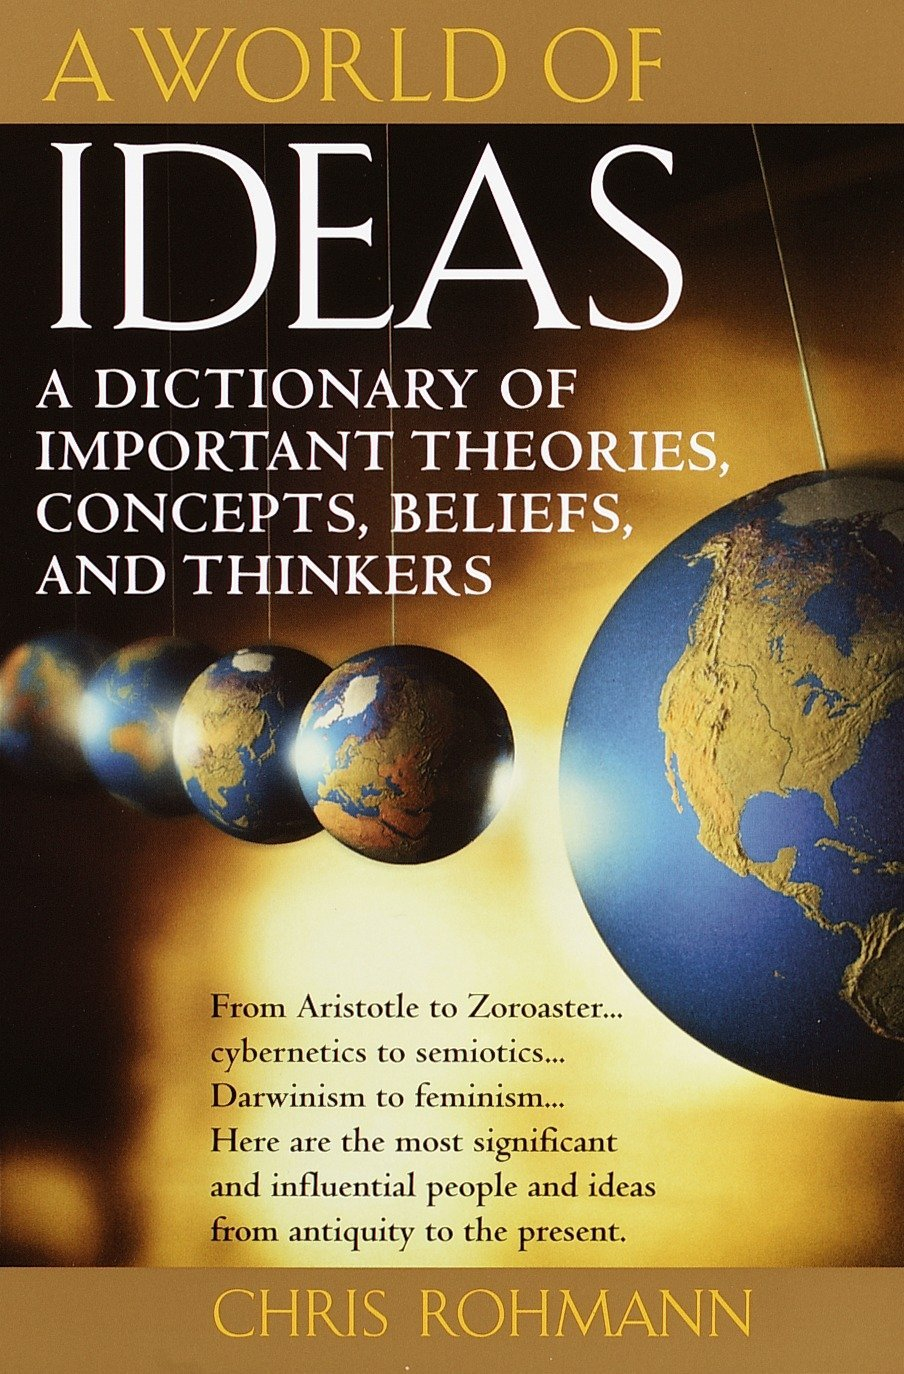 A World of Ideas : The Dictionary of Important Ideas and Thinkers by Ballantine Books